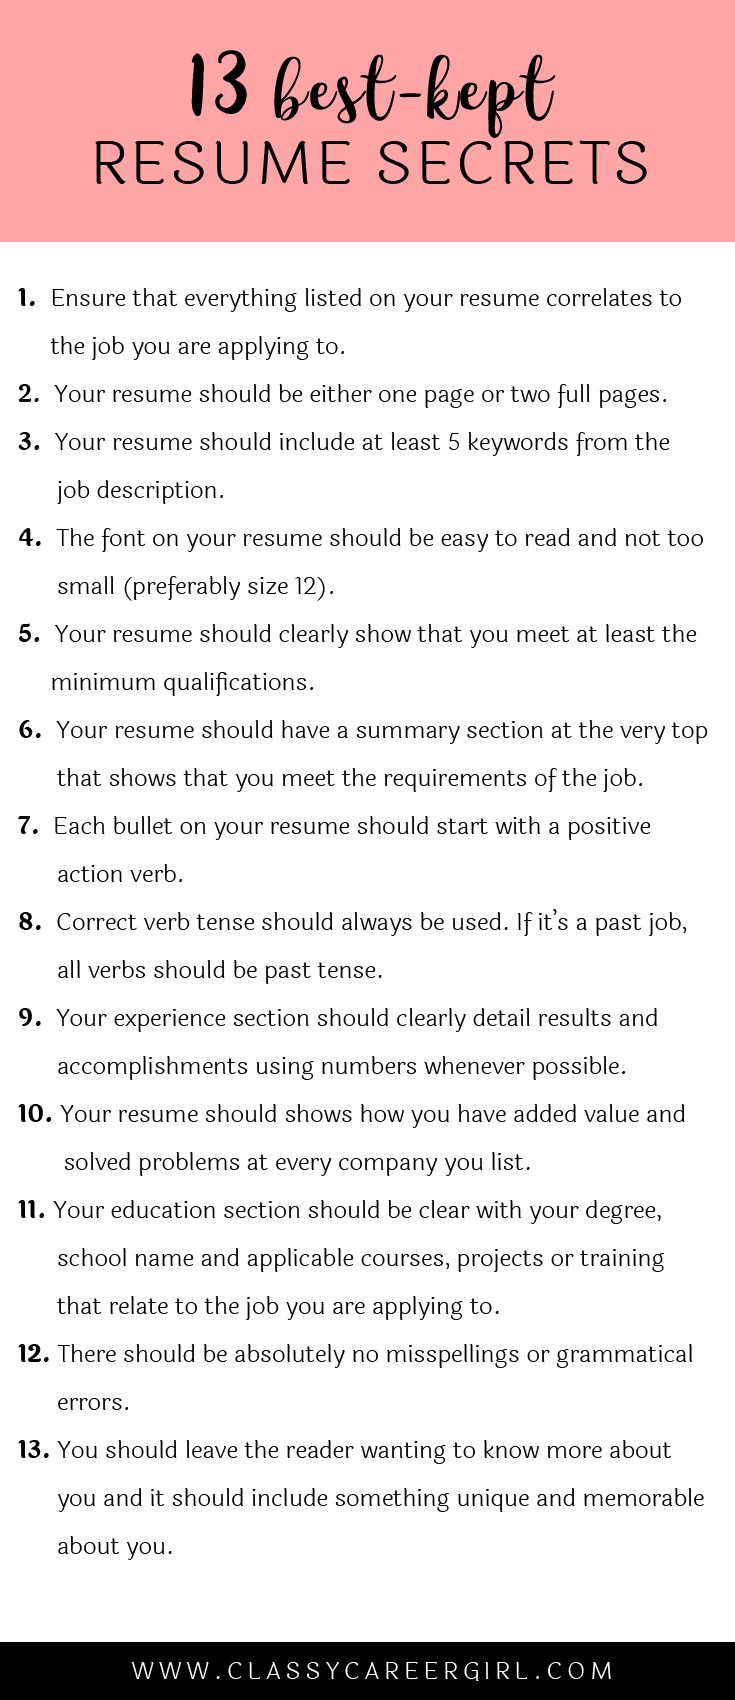 Opposenewapstandardsus  Picturesque  Ideas About Resume On Pinterest  Cv Format Resume  With Exquisite Some Hiring Managers Will Toss Your Resume Out If You Dont Know These  With Charming Words Not To Use In A Resume Also Resume Intro In Addition Pay For Resume And Manager Resume Objective As Well As Real Estate Resume Sample Additionally Engineering Resume Format From Pinterestcom With Opposenewapstandardsus  Exquisite  Ideas About Resume On Pinterest  Cv Format Resume  With Charming Some Hiring Managers Will Toss Your Resume Out If You Dont Know These  And Picturesque Words Not To Use In A Resume Also Resume Intro In Addition Pay For Resume From Pinterestcom